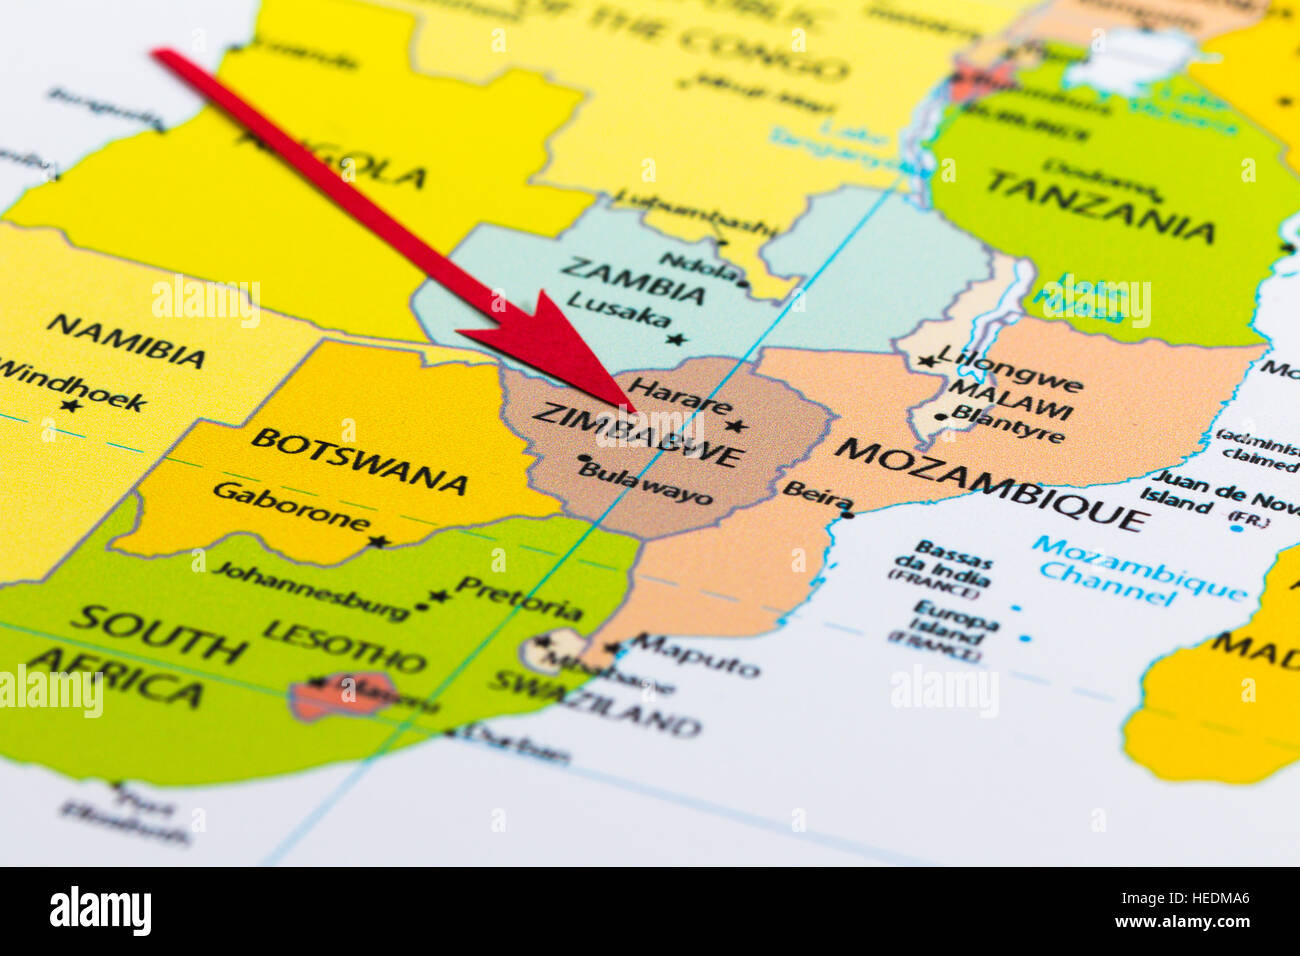 Map africa zimbabwe stock photos map africa zimbabwe stock images red arrow pointing zimbabwe on the map of africa continent stock image ccuart Image collections